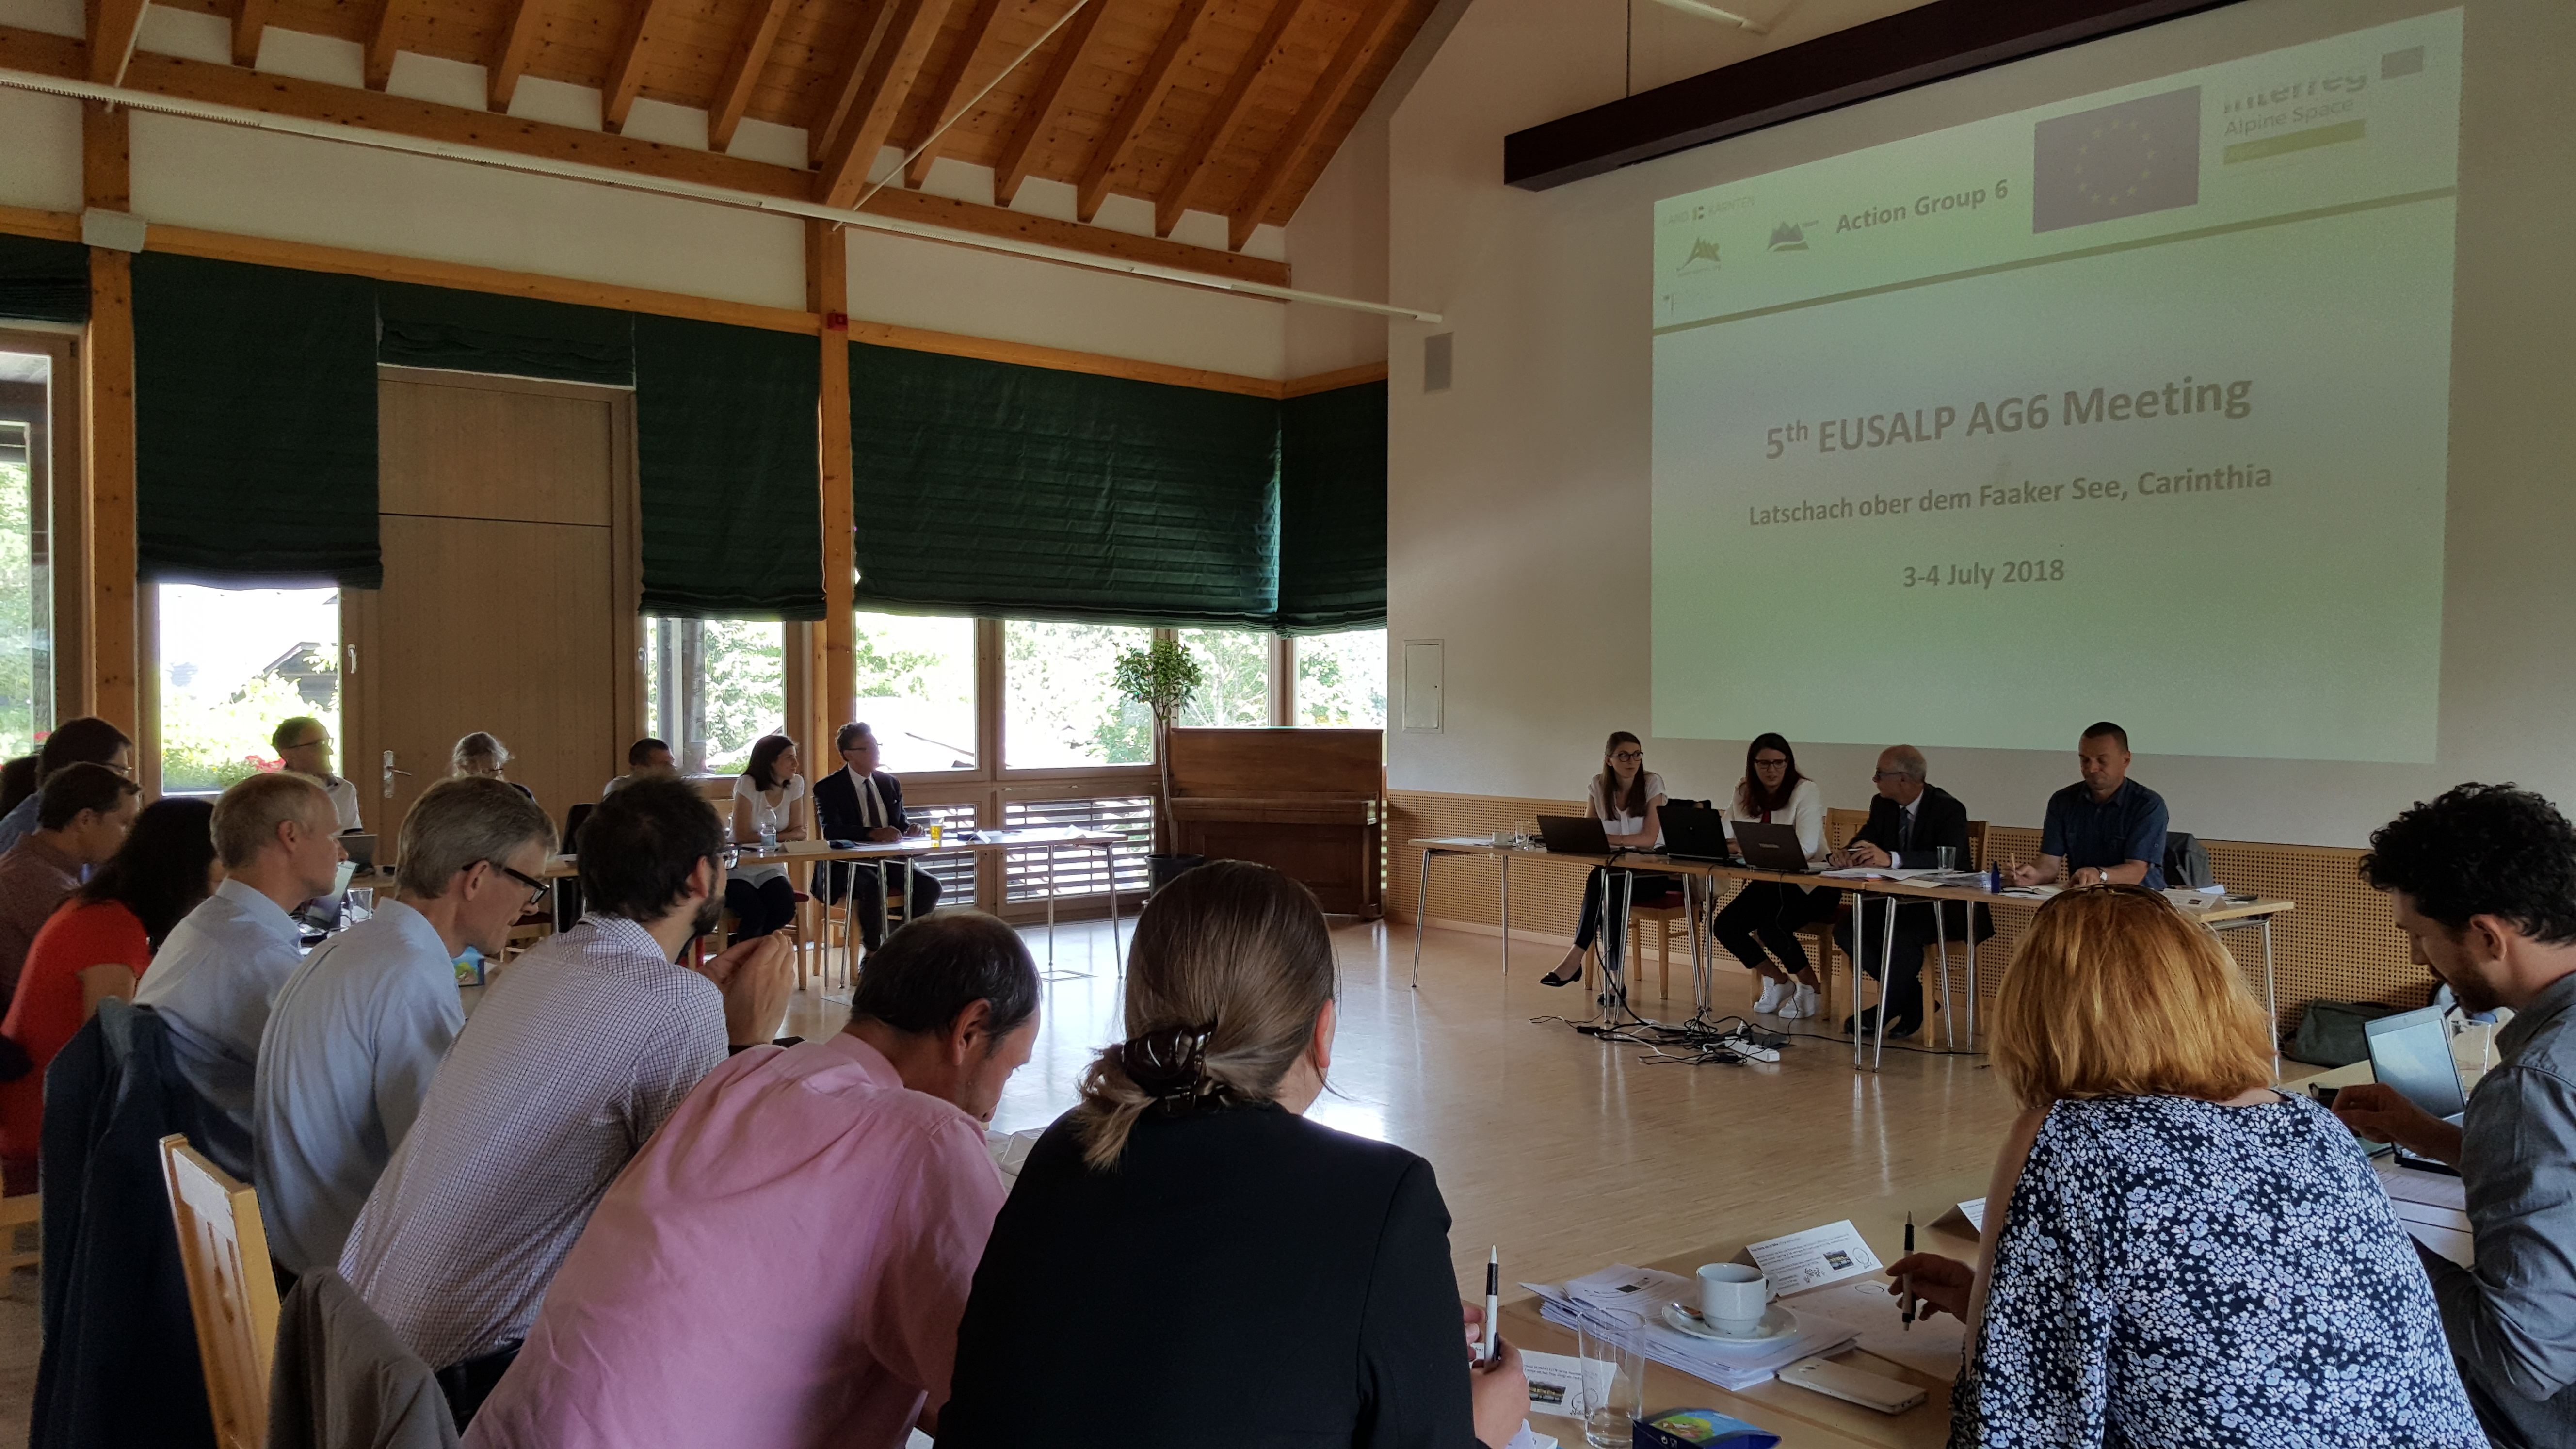 AG6 members at their 5th meeting on 3-4 July 2018 in Latschach at Lake Faak in Carinthia.